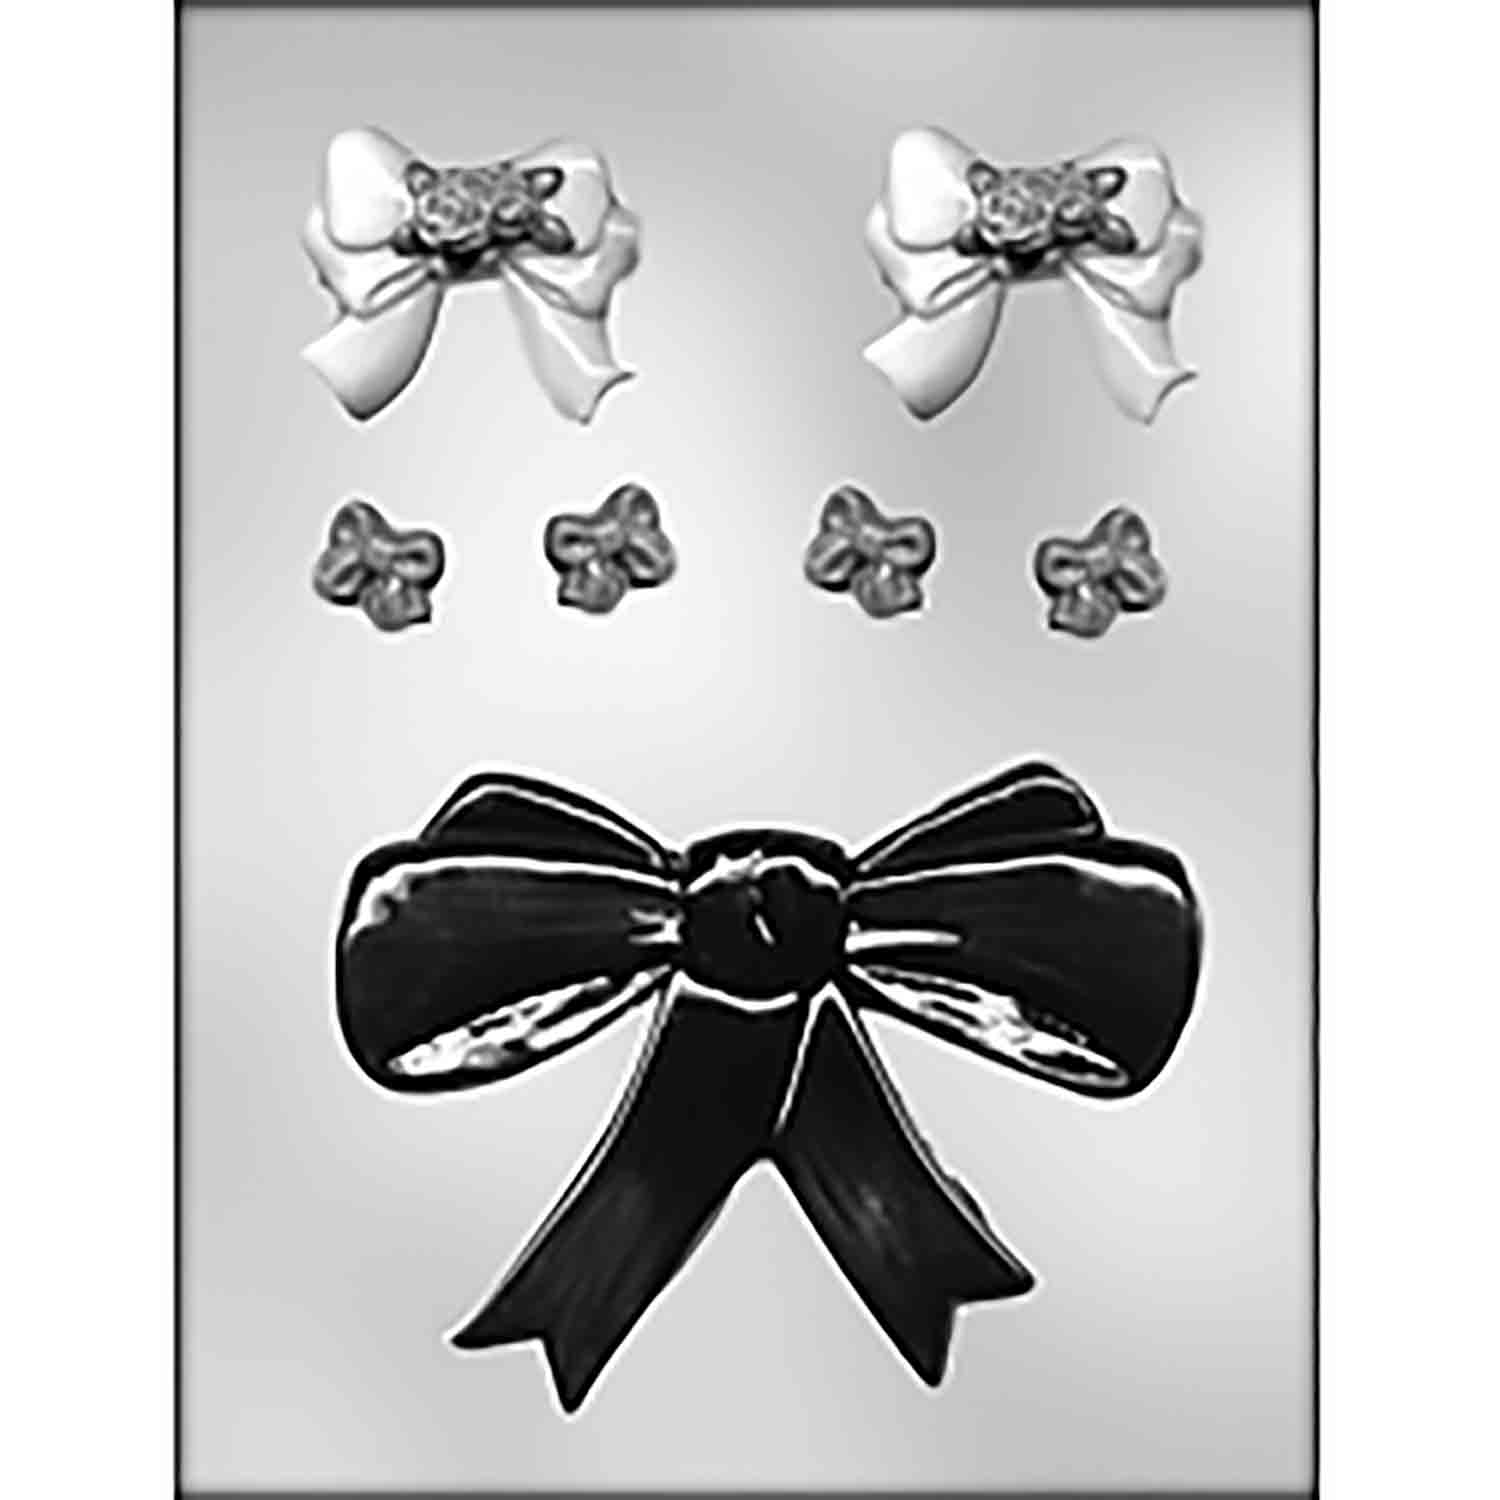 Ribbons/Bows (3 Sizes) Chocolate Candy Mold